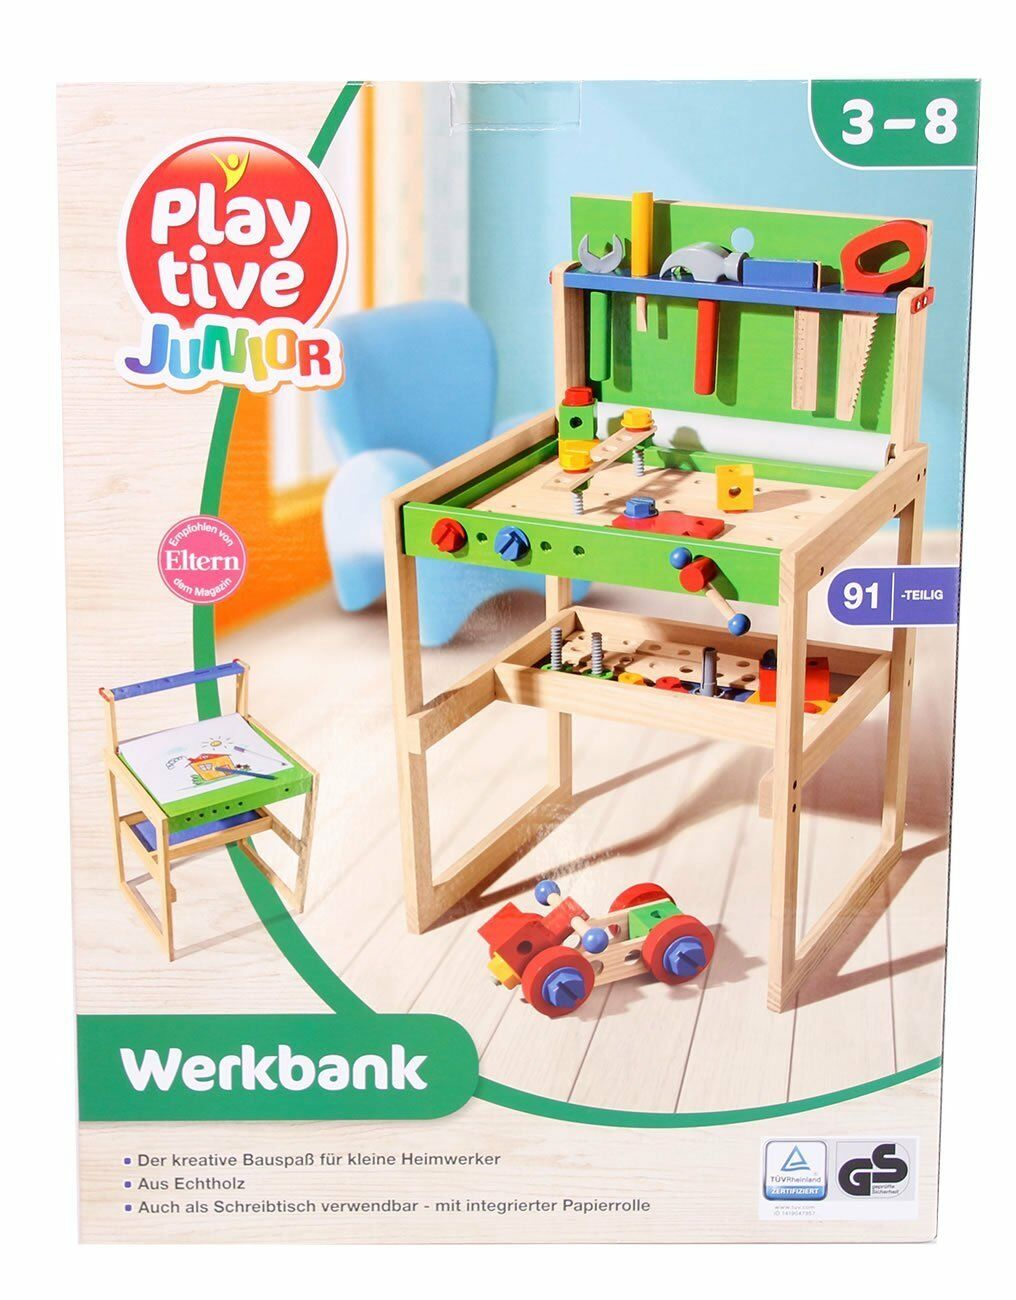 Playtive Junior Toy Workbench Workbench Workbench 91 Pieces Learn & Activities Toy 7ff9ba